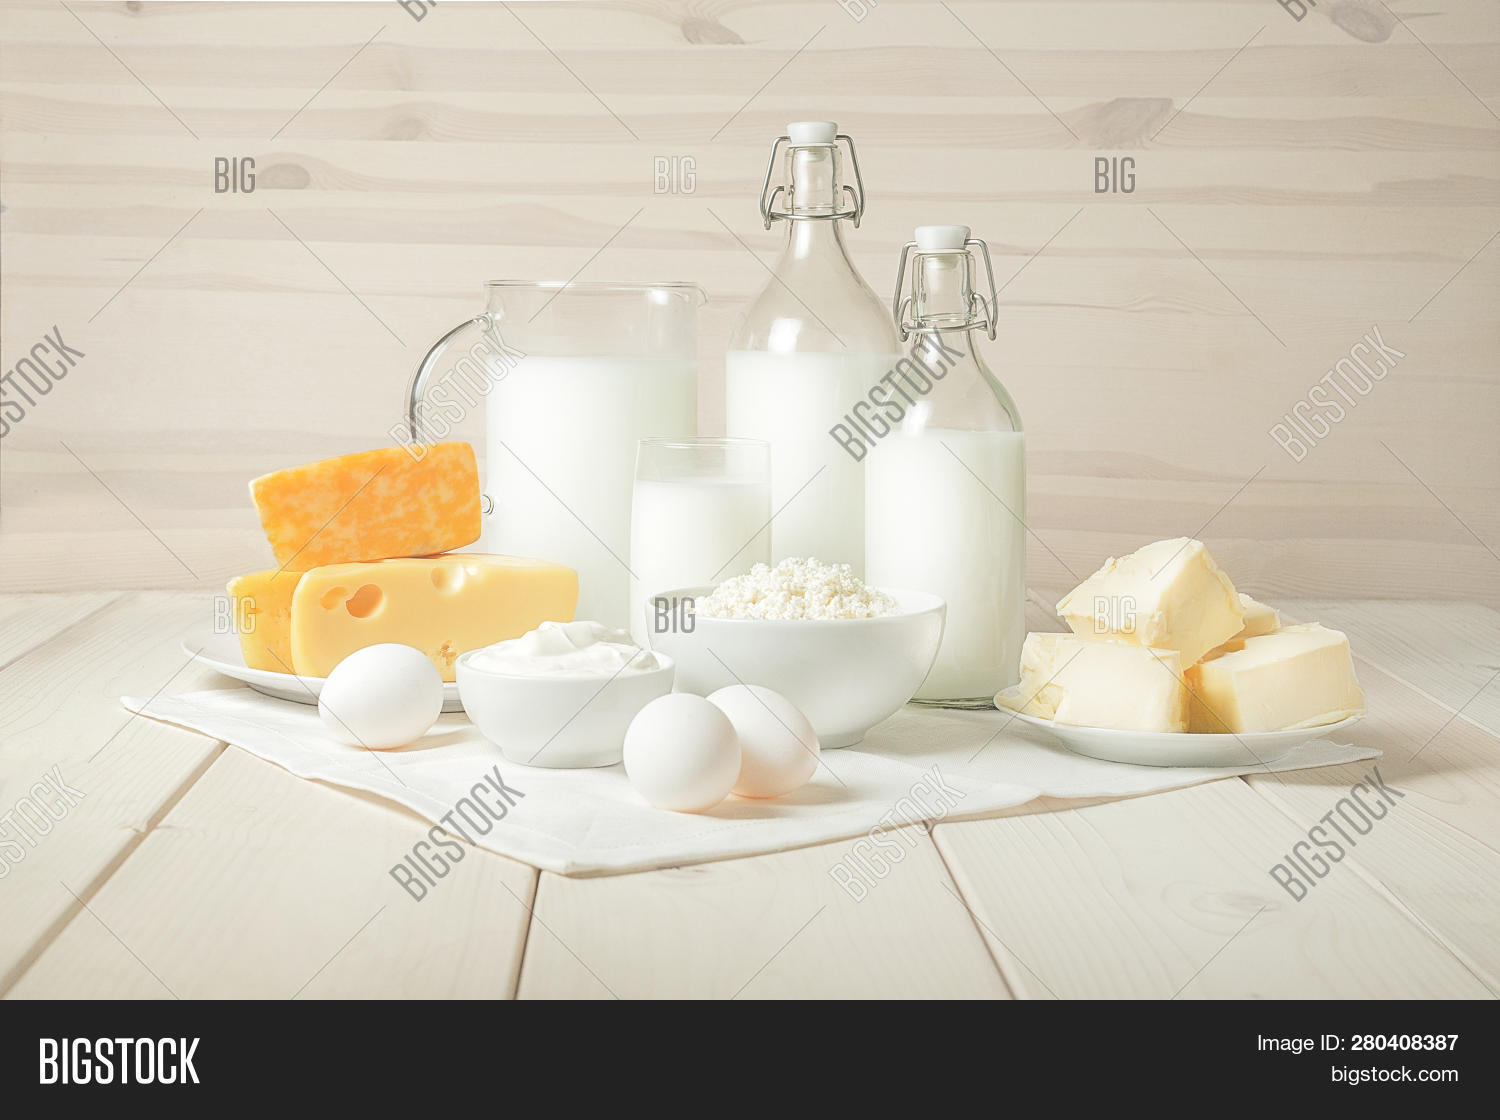 background,bowl,breakfast,butter,buy,calcium,cheese:,chicken,close,cottage,cream,curd,dairy,delicious,diet,dieting,drink,eating,eggs,food,for,fresh,freshness,glass,goat,group,healthy,ingredient,intake,isolated,jug,meal,milk,nutrients,nutrition,oil,organic,photo,product,protein,quarters,sauce,sour,traditional,vegetarian,white,with,yogurt